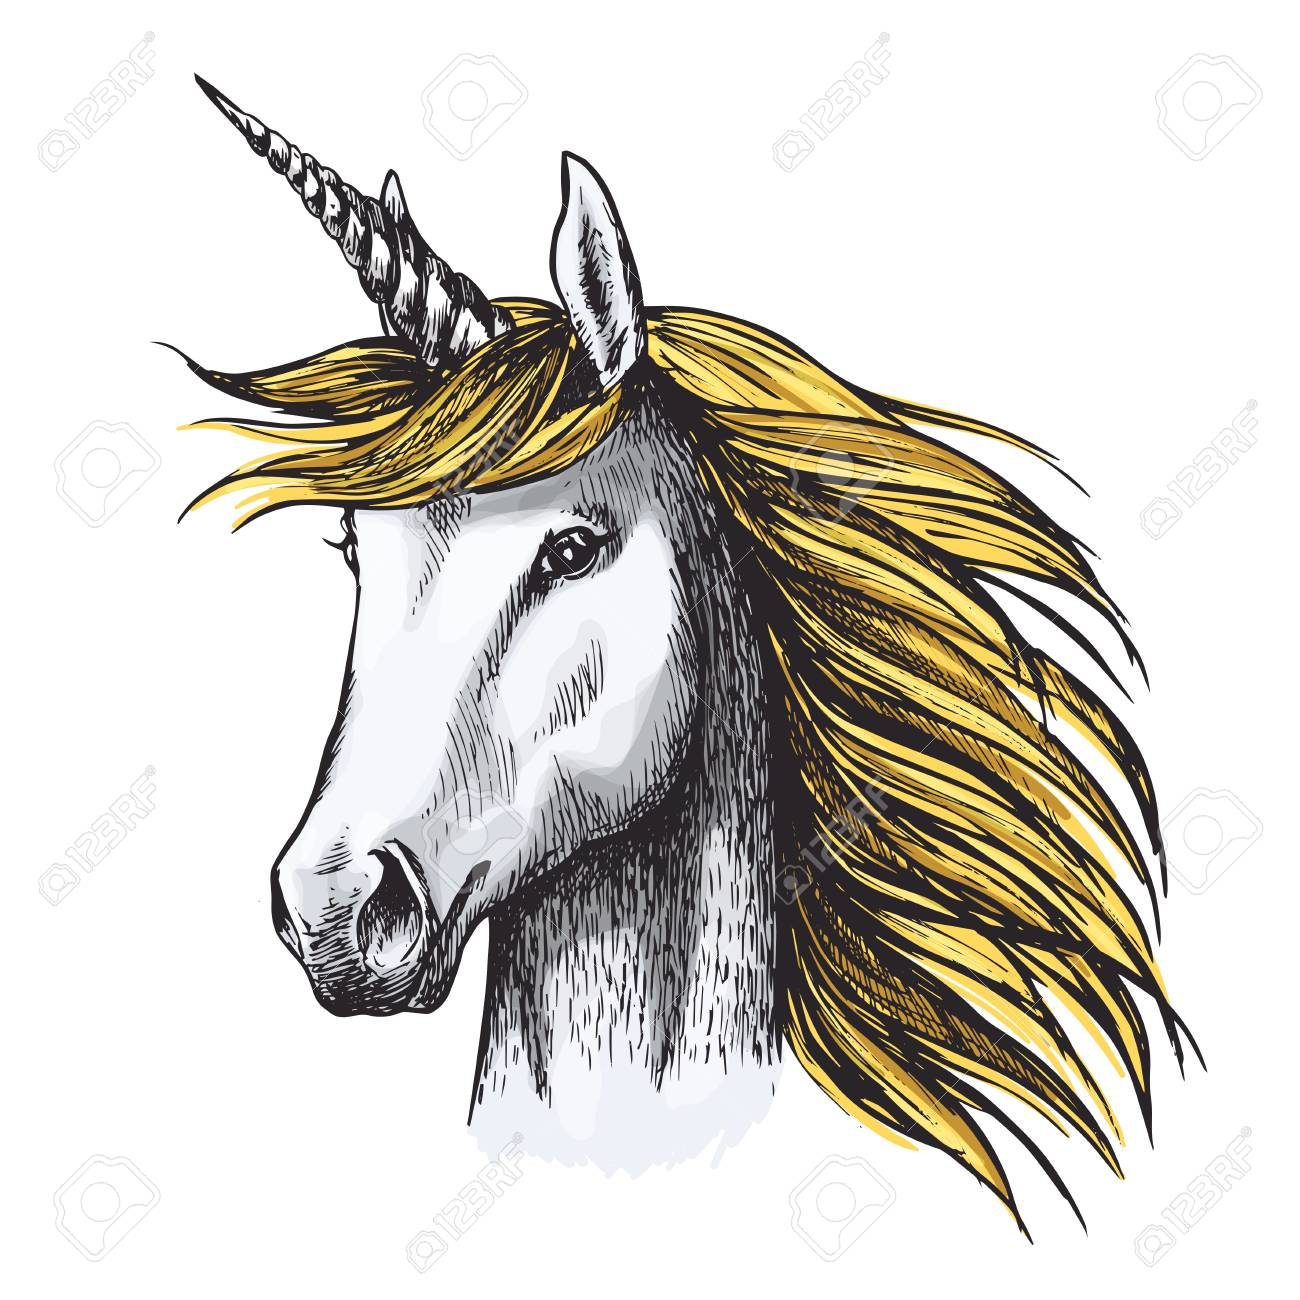 Unicorn With Golden Mane Sketch Of Magic Horse With Spiraling Royalty Free Cliparts Vectors And Stock Illustration Image 99639364